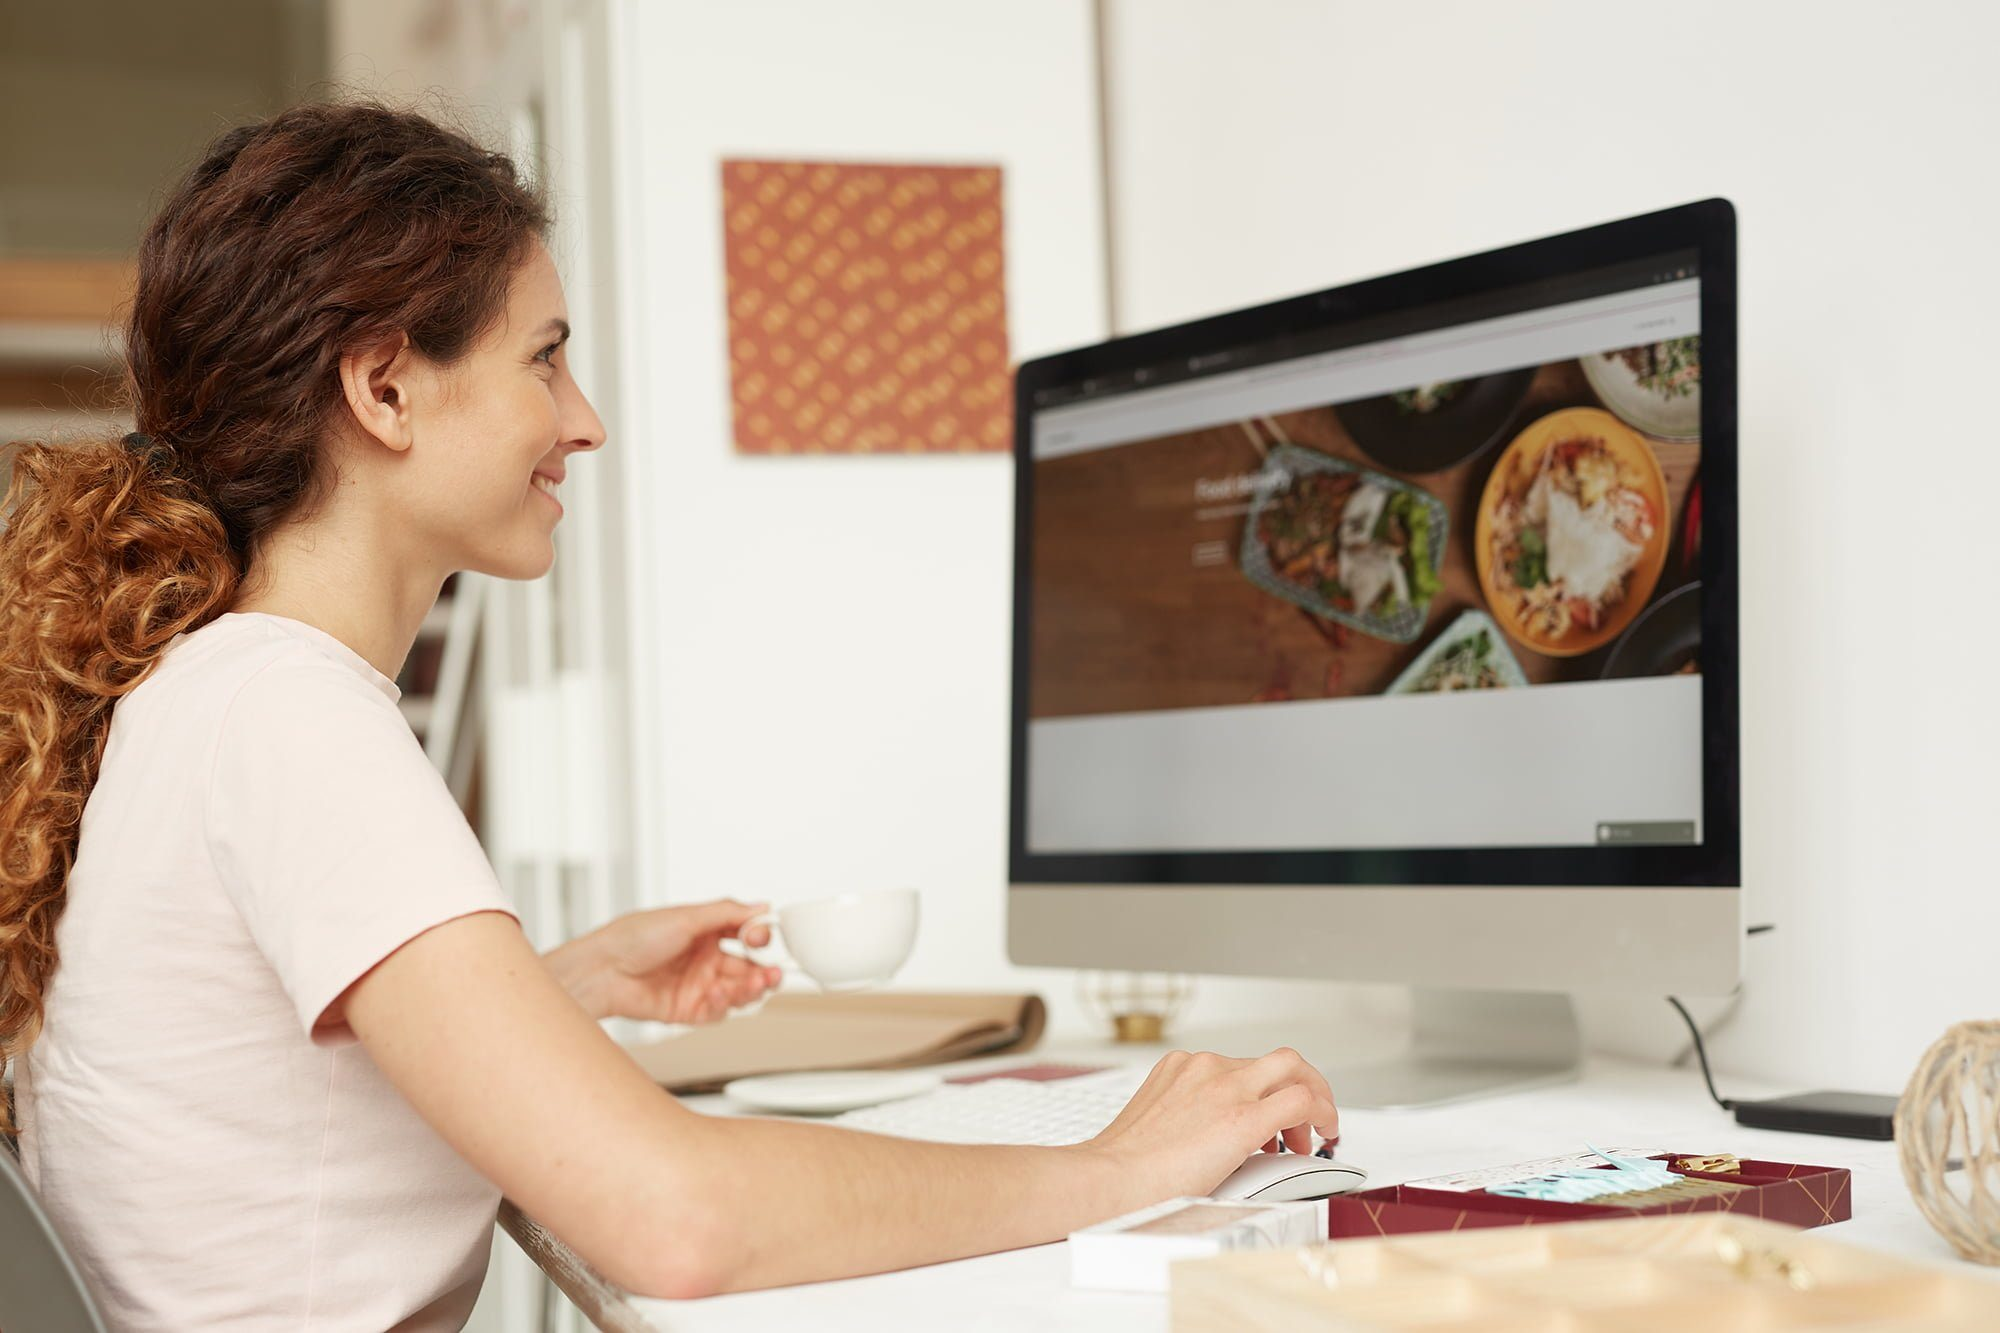 Positive attractive female web designer with curly hair sitting at table and drinking coffee while working on website in office